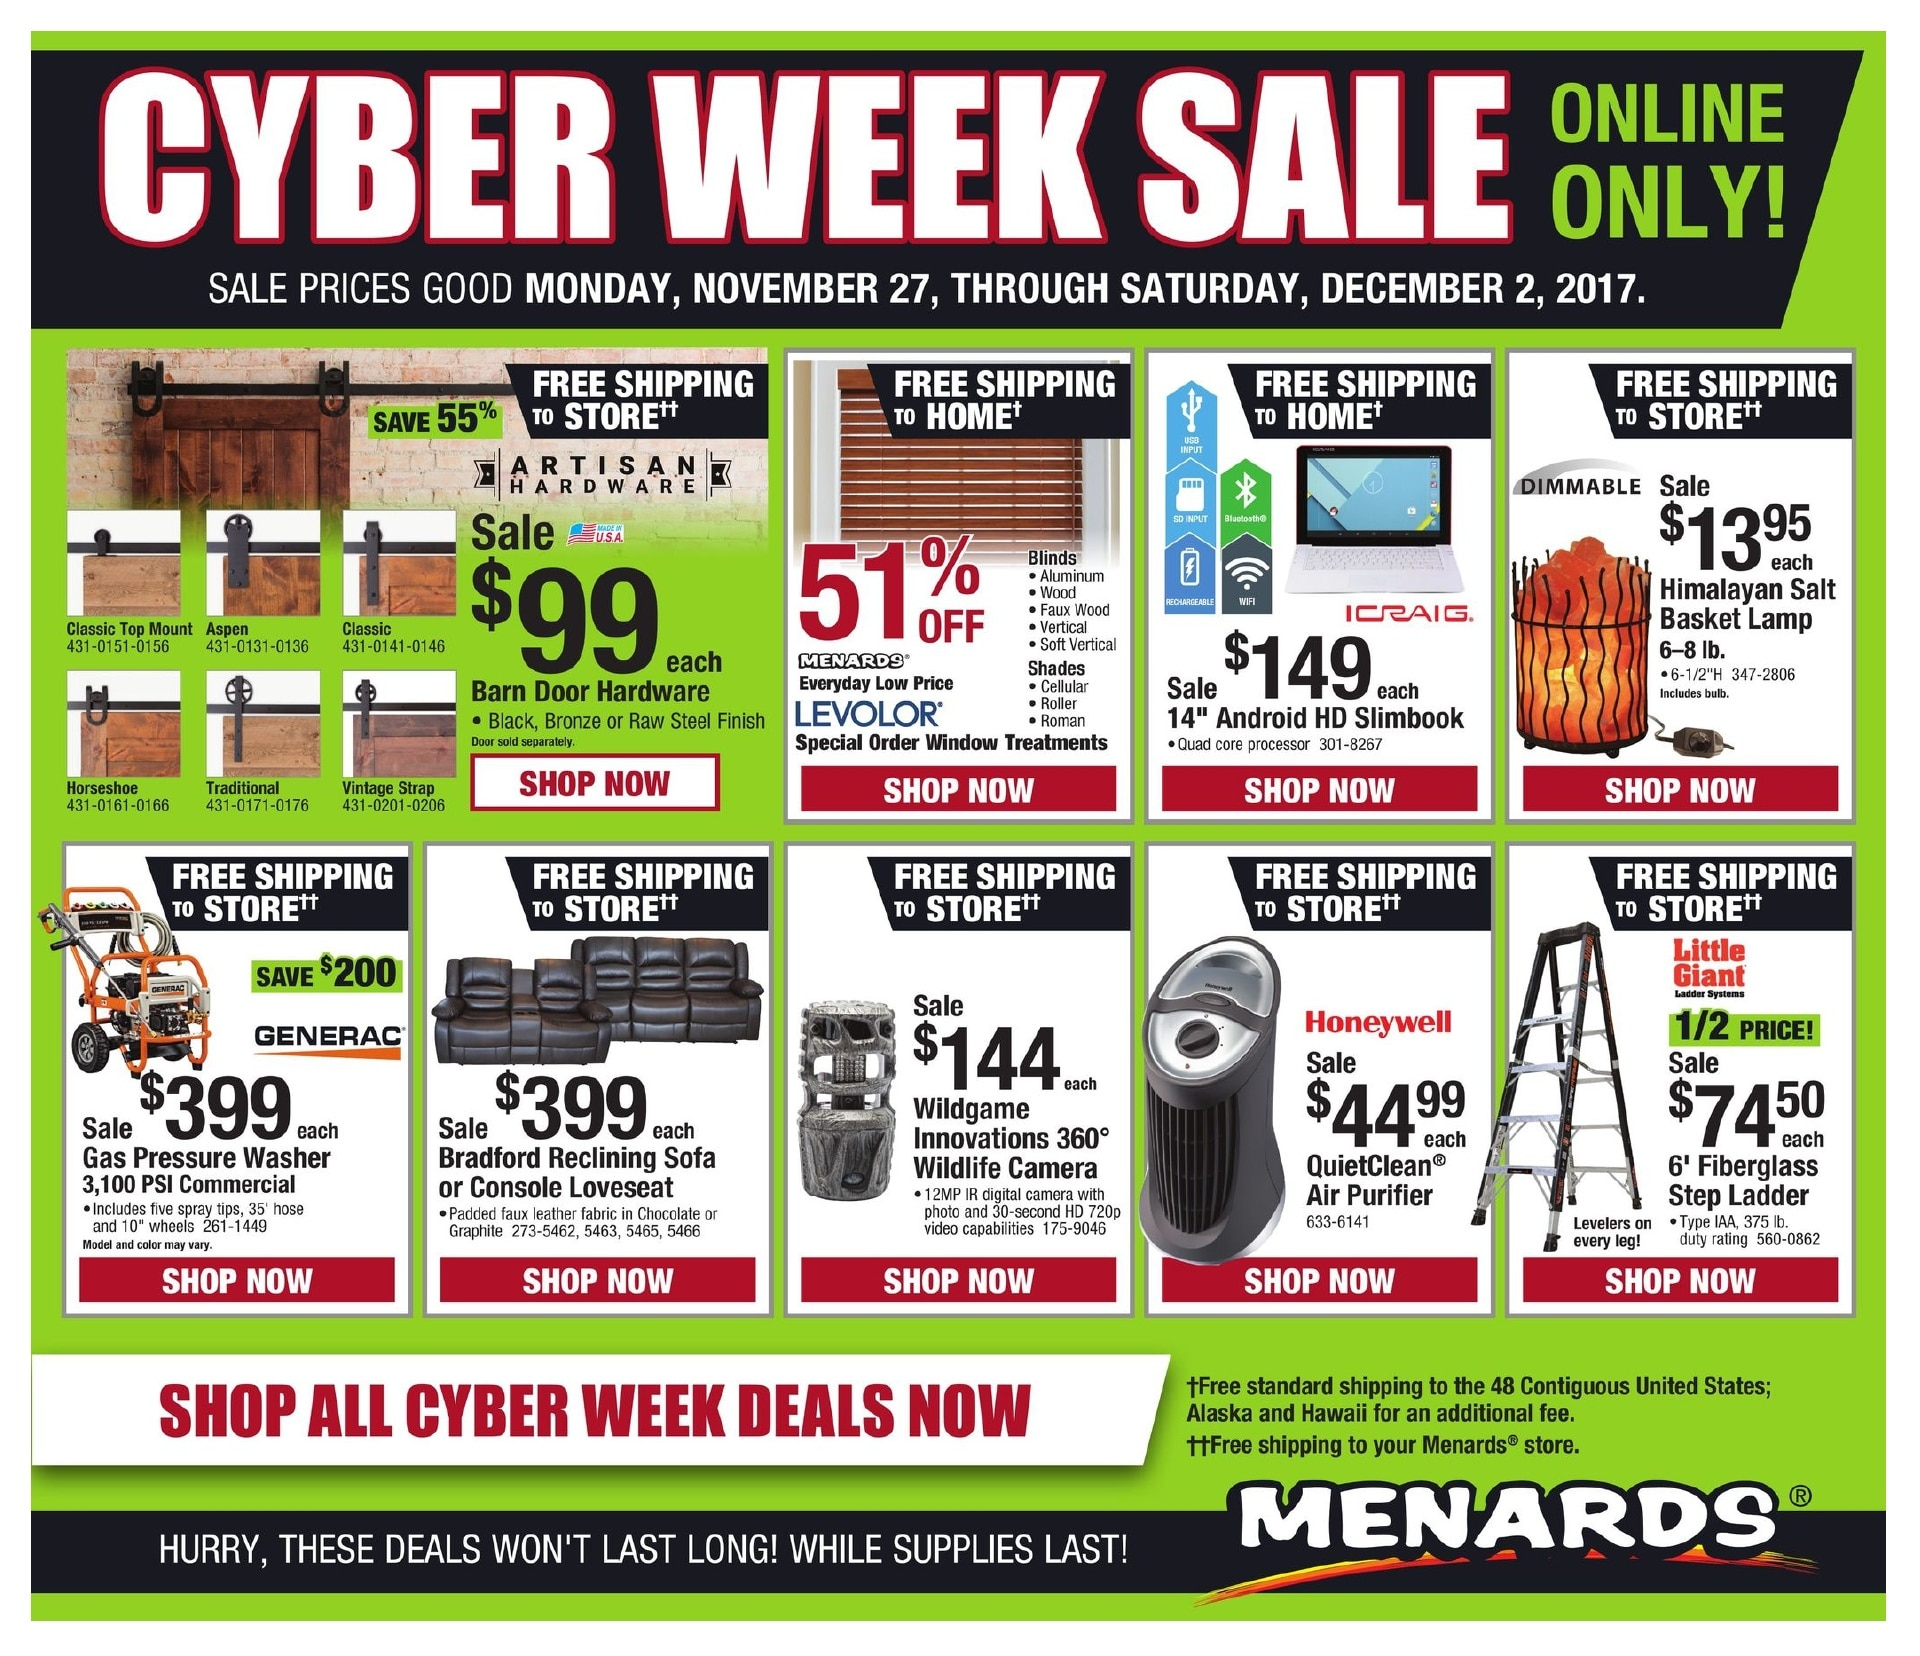 Menards: Get 11% Mail- in-rebate Sitewide. Mail-in Rebate is in the form of merchandise credit check, valid in-store only. Mail-in Rebate is in the form of merchandise credit check, valid in-store only.